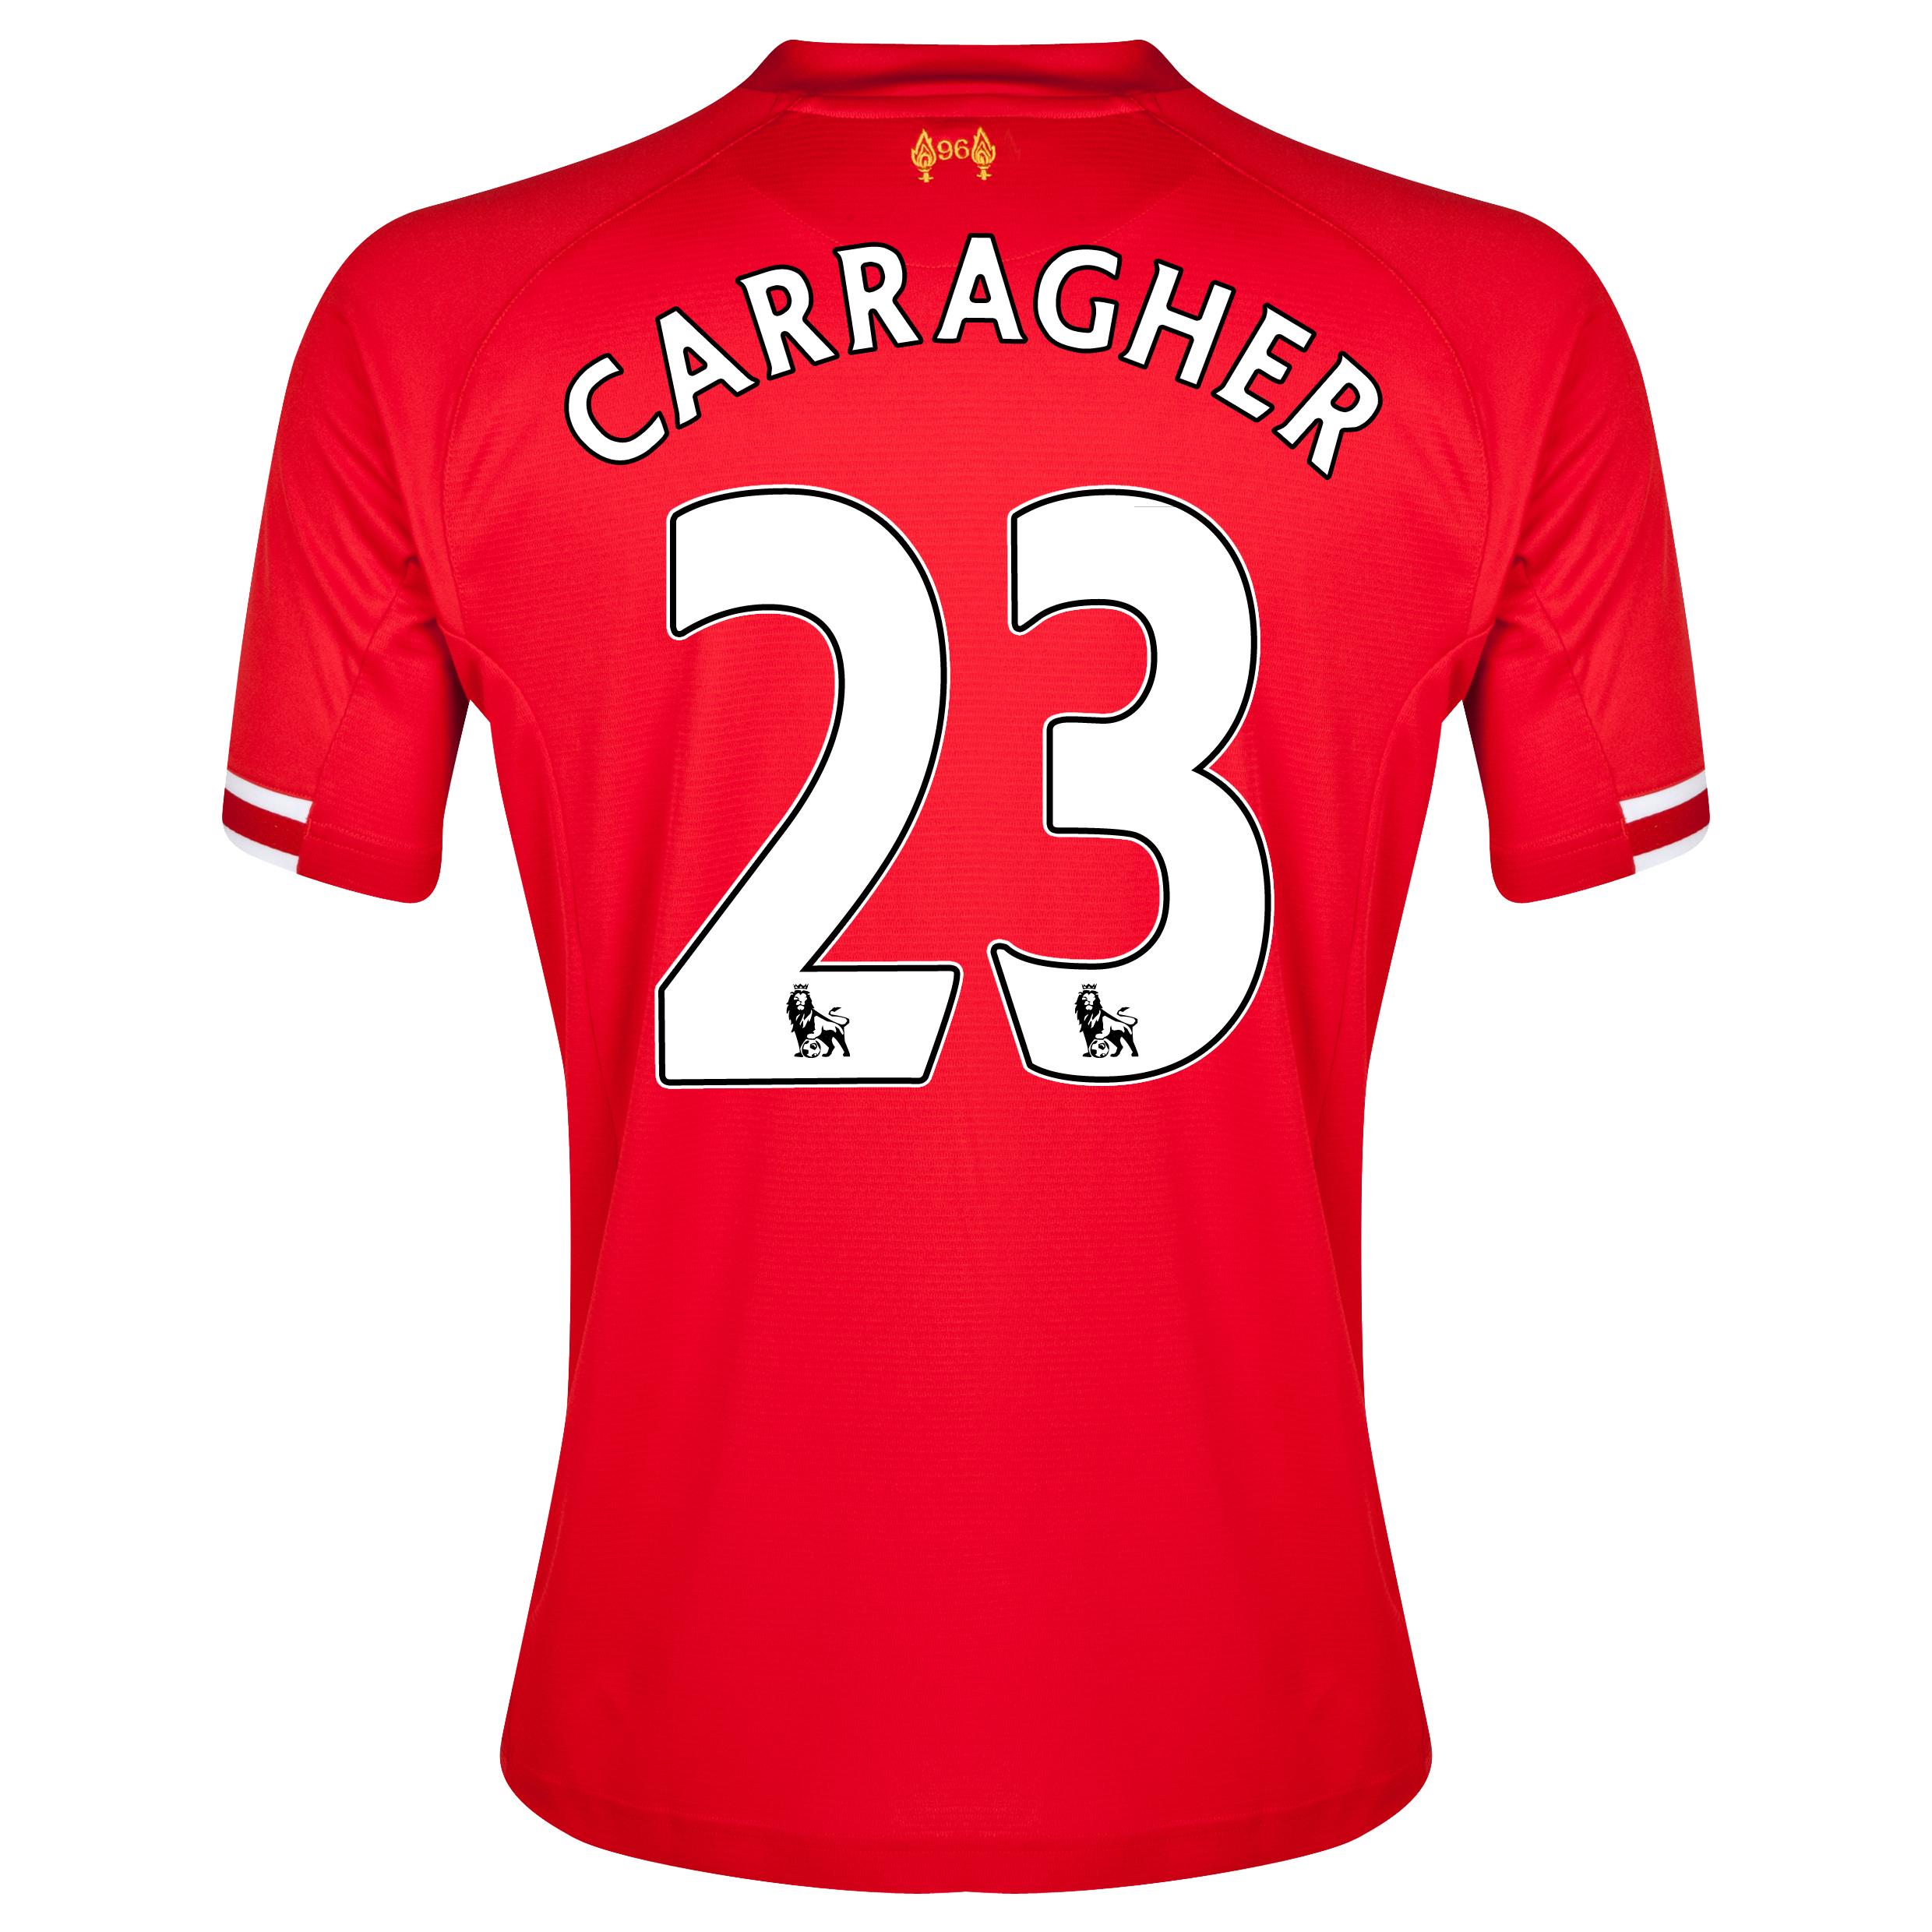 Liverpool Home Shirt 2013/14 kids with Carragher 23 printing